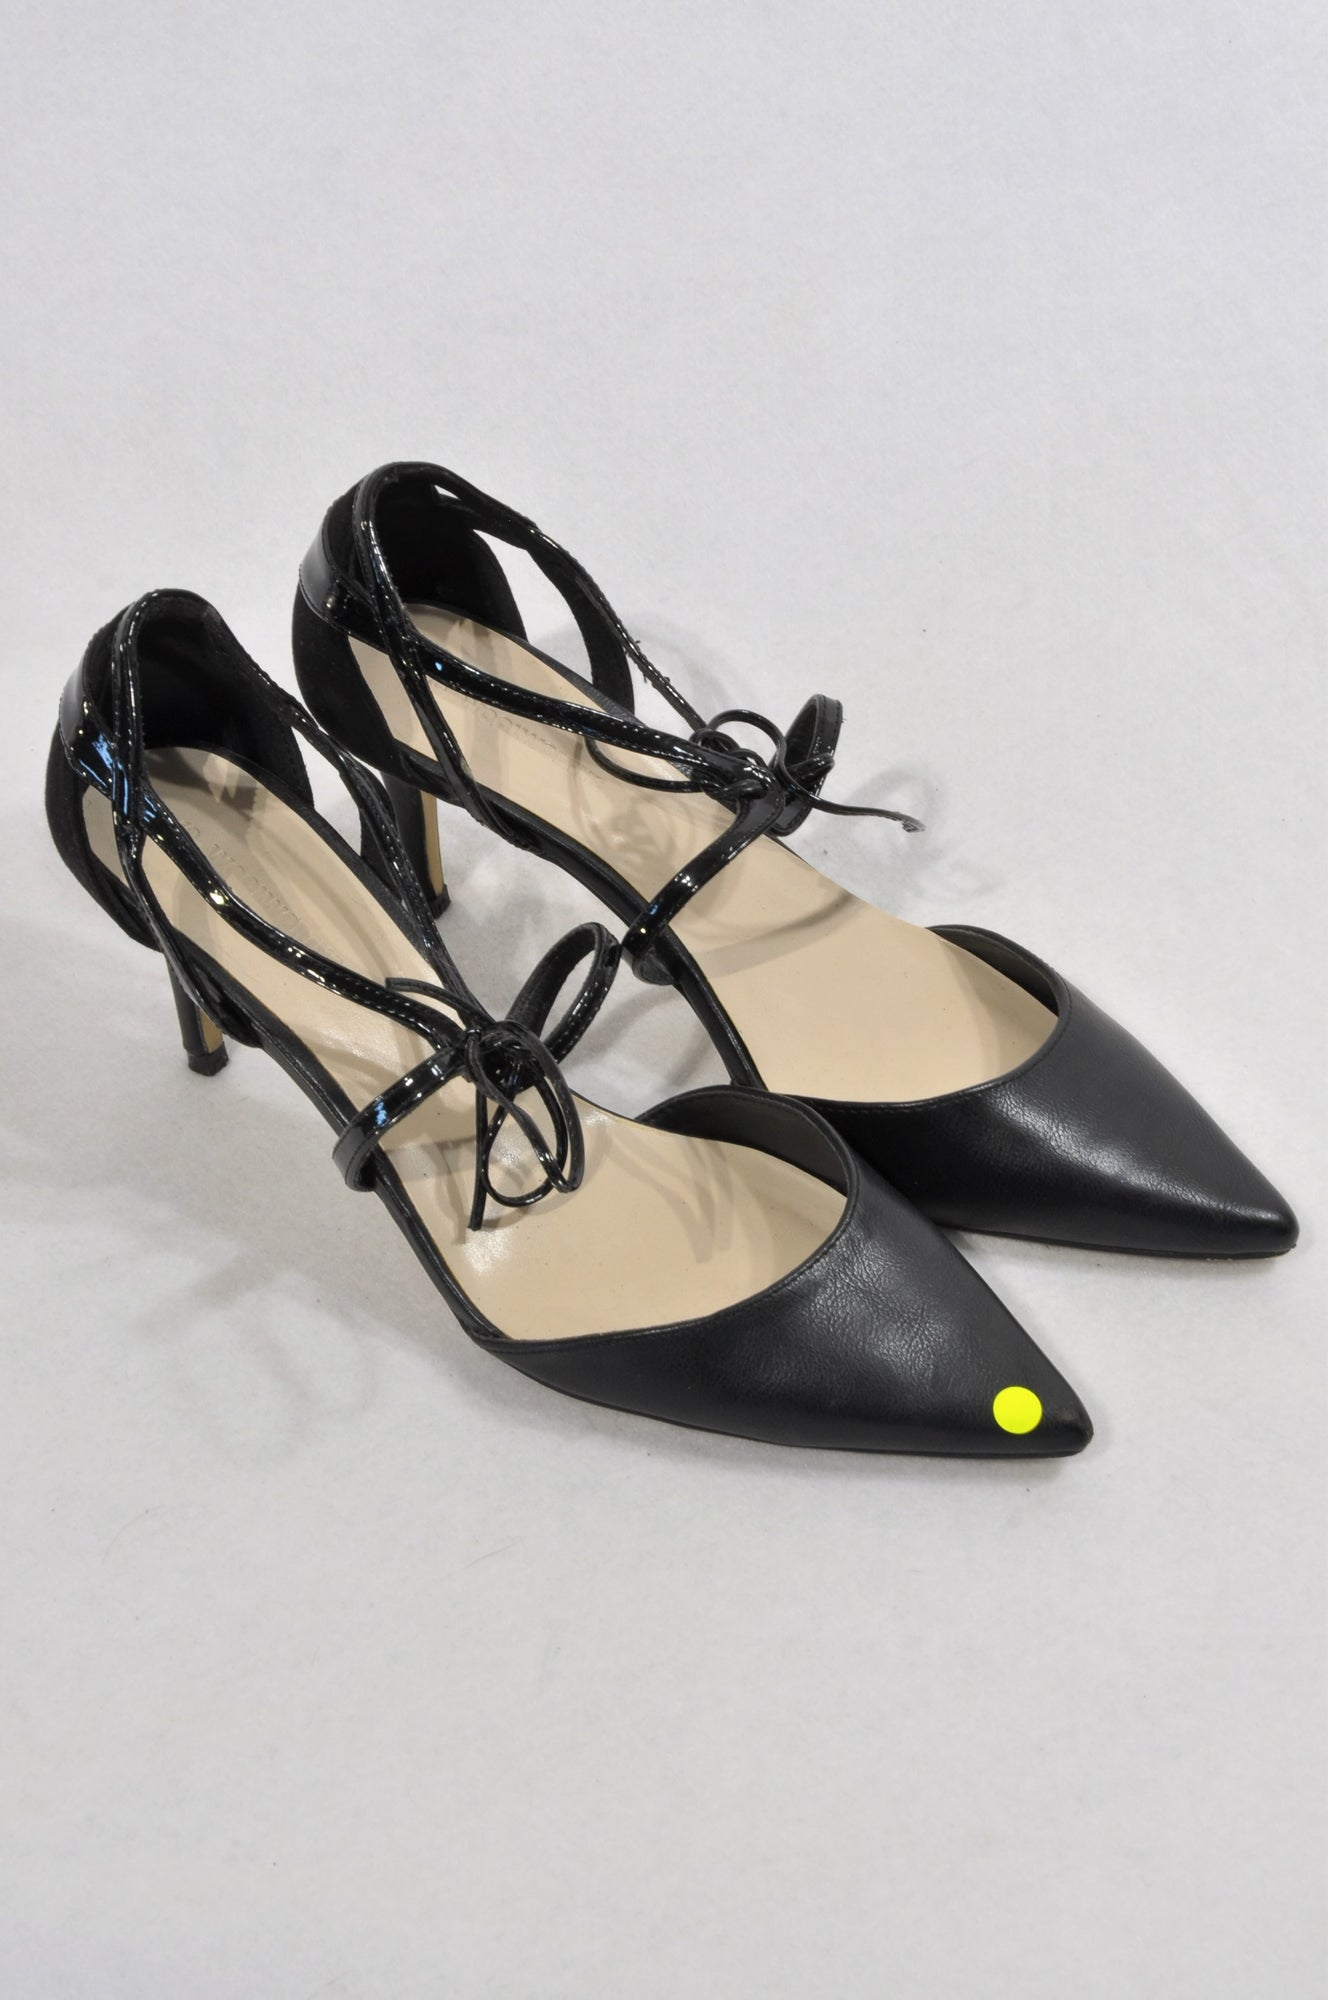 Woolworths Black Pointed Toe Tie Shoes Women Size 6